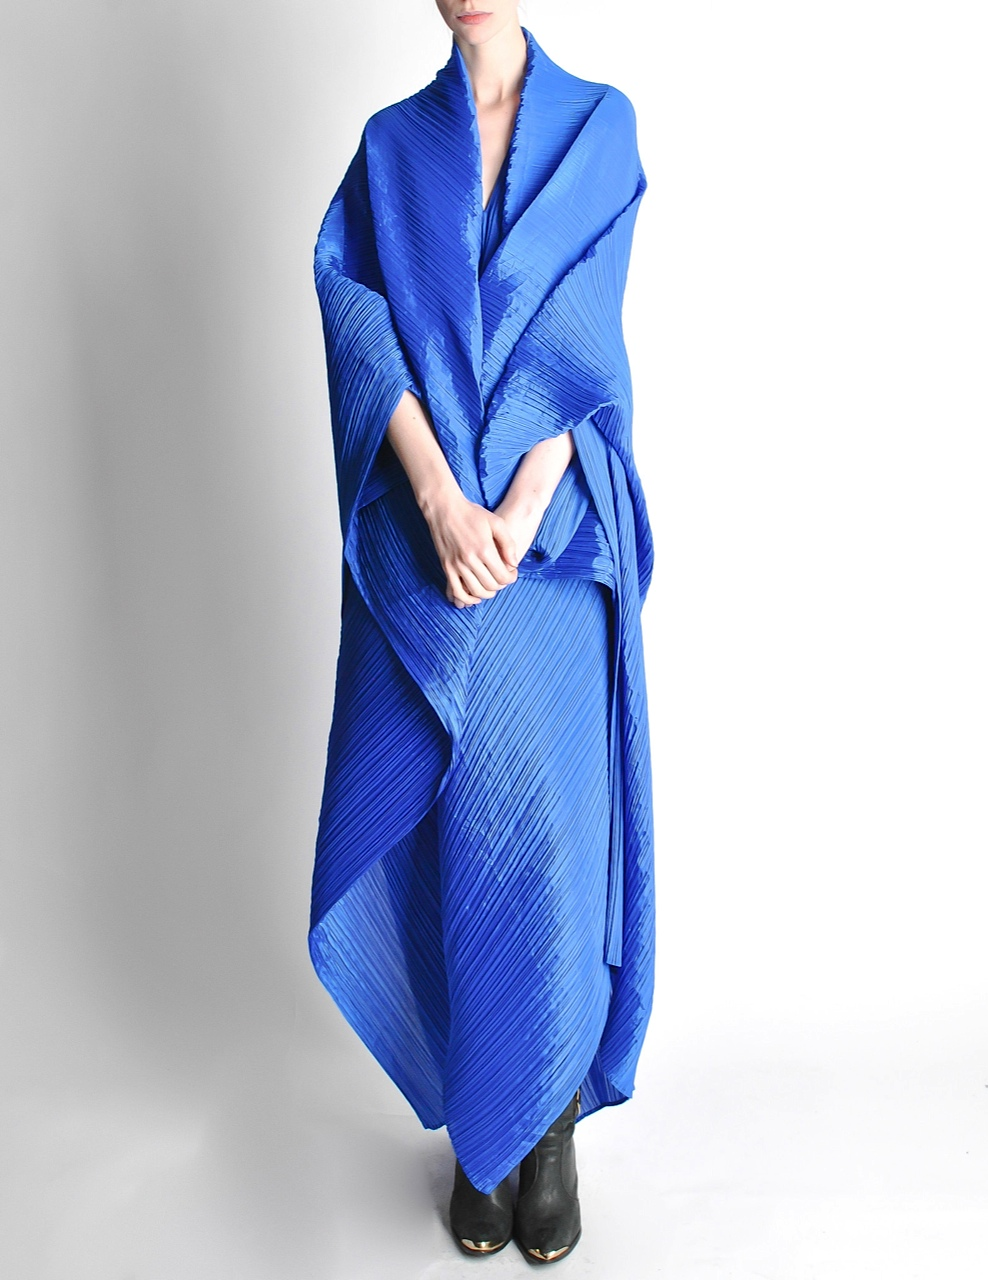 Issey_Miyake_Pleats_Please_Electric_Blue_Poncho_1_of_11